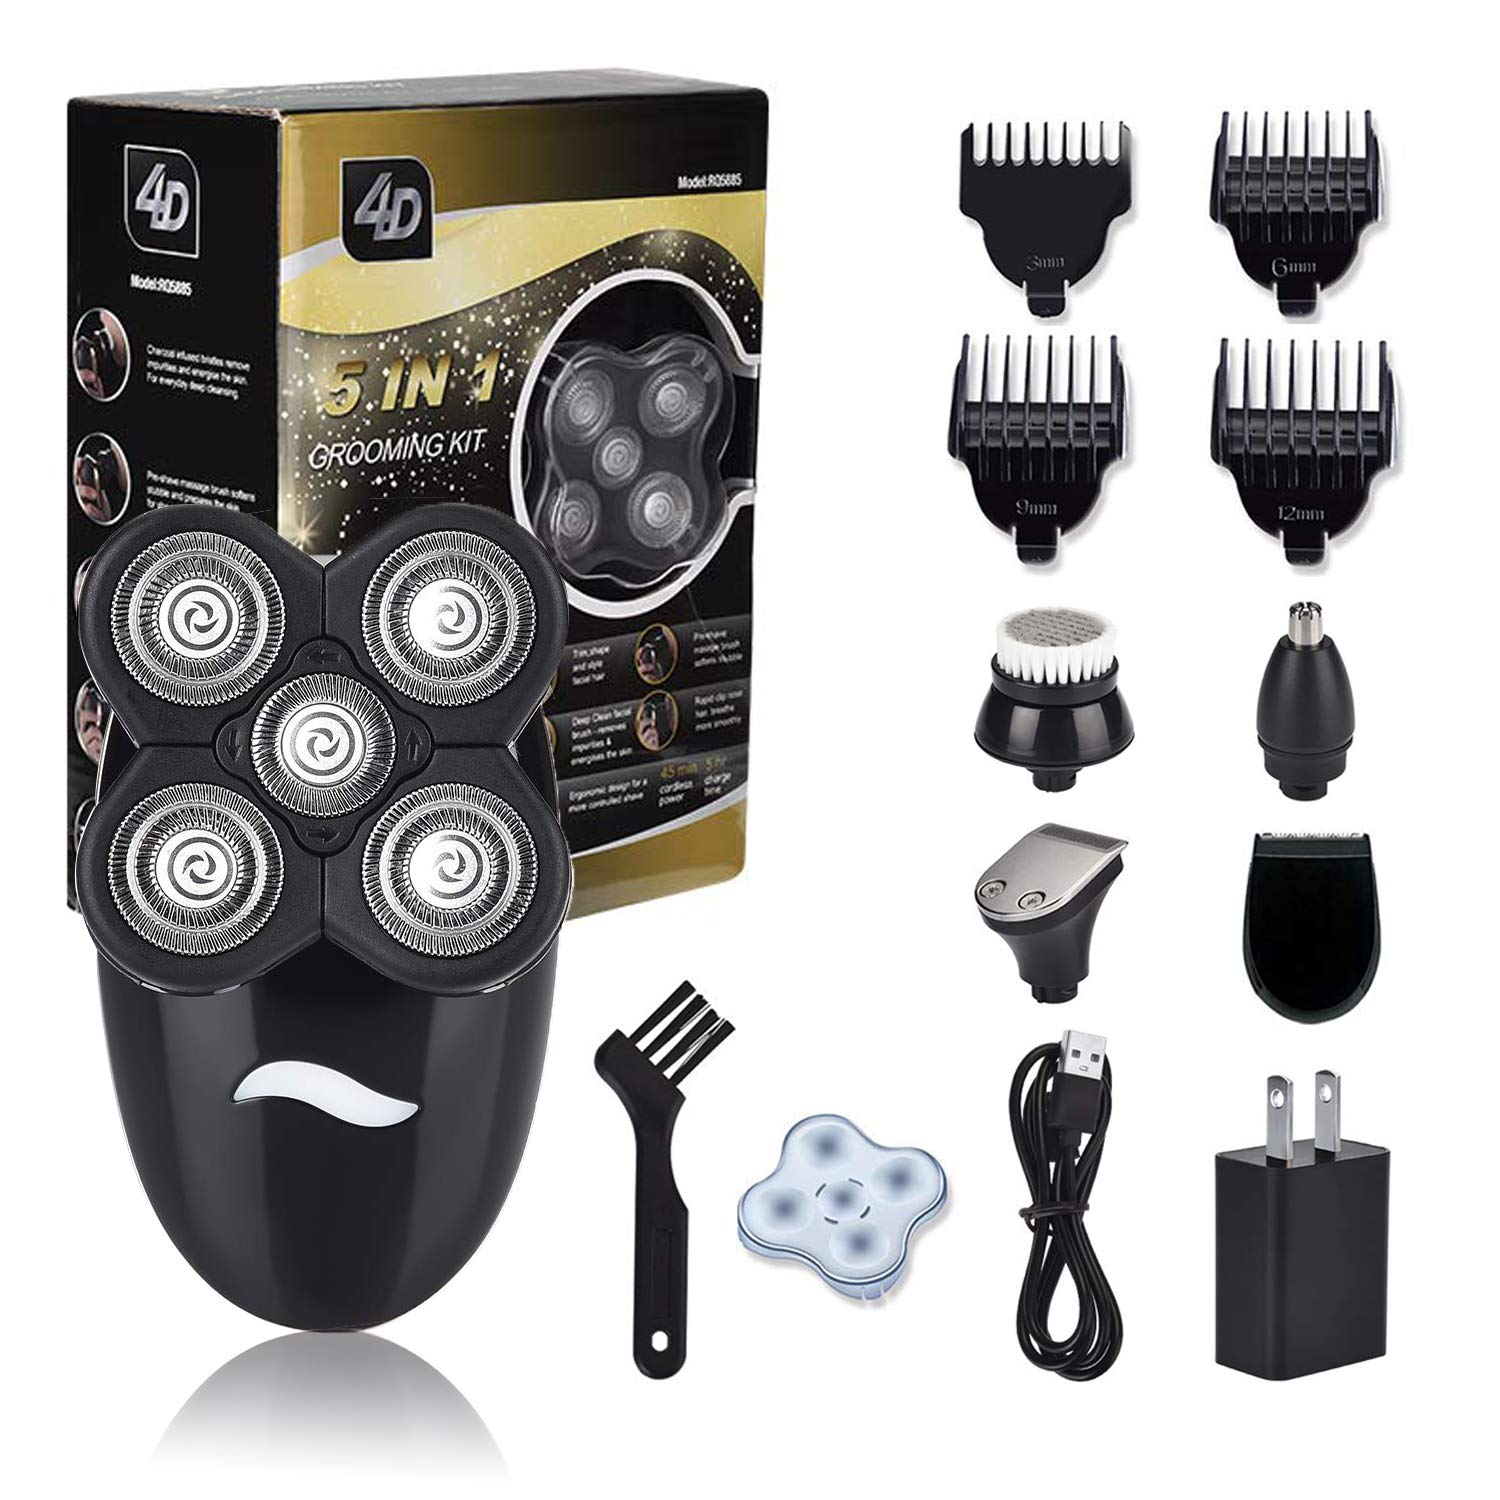 Men's 5 In 1 Electric Shaver & Grooming Kit, Cordless Waterproof Electric Razor